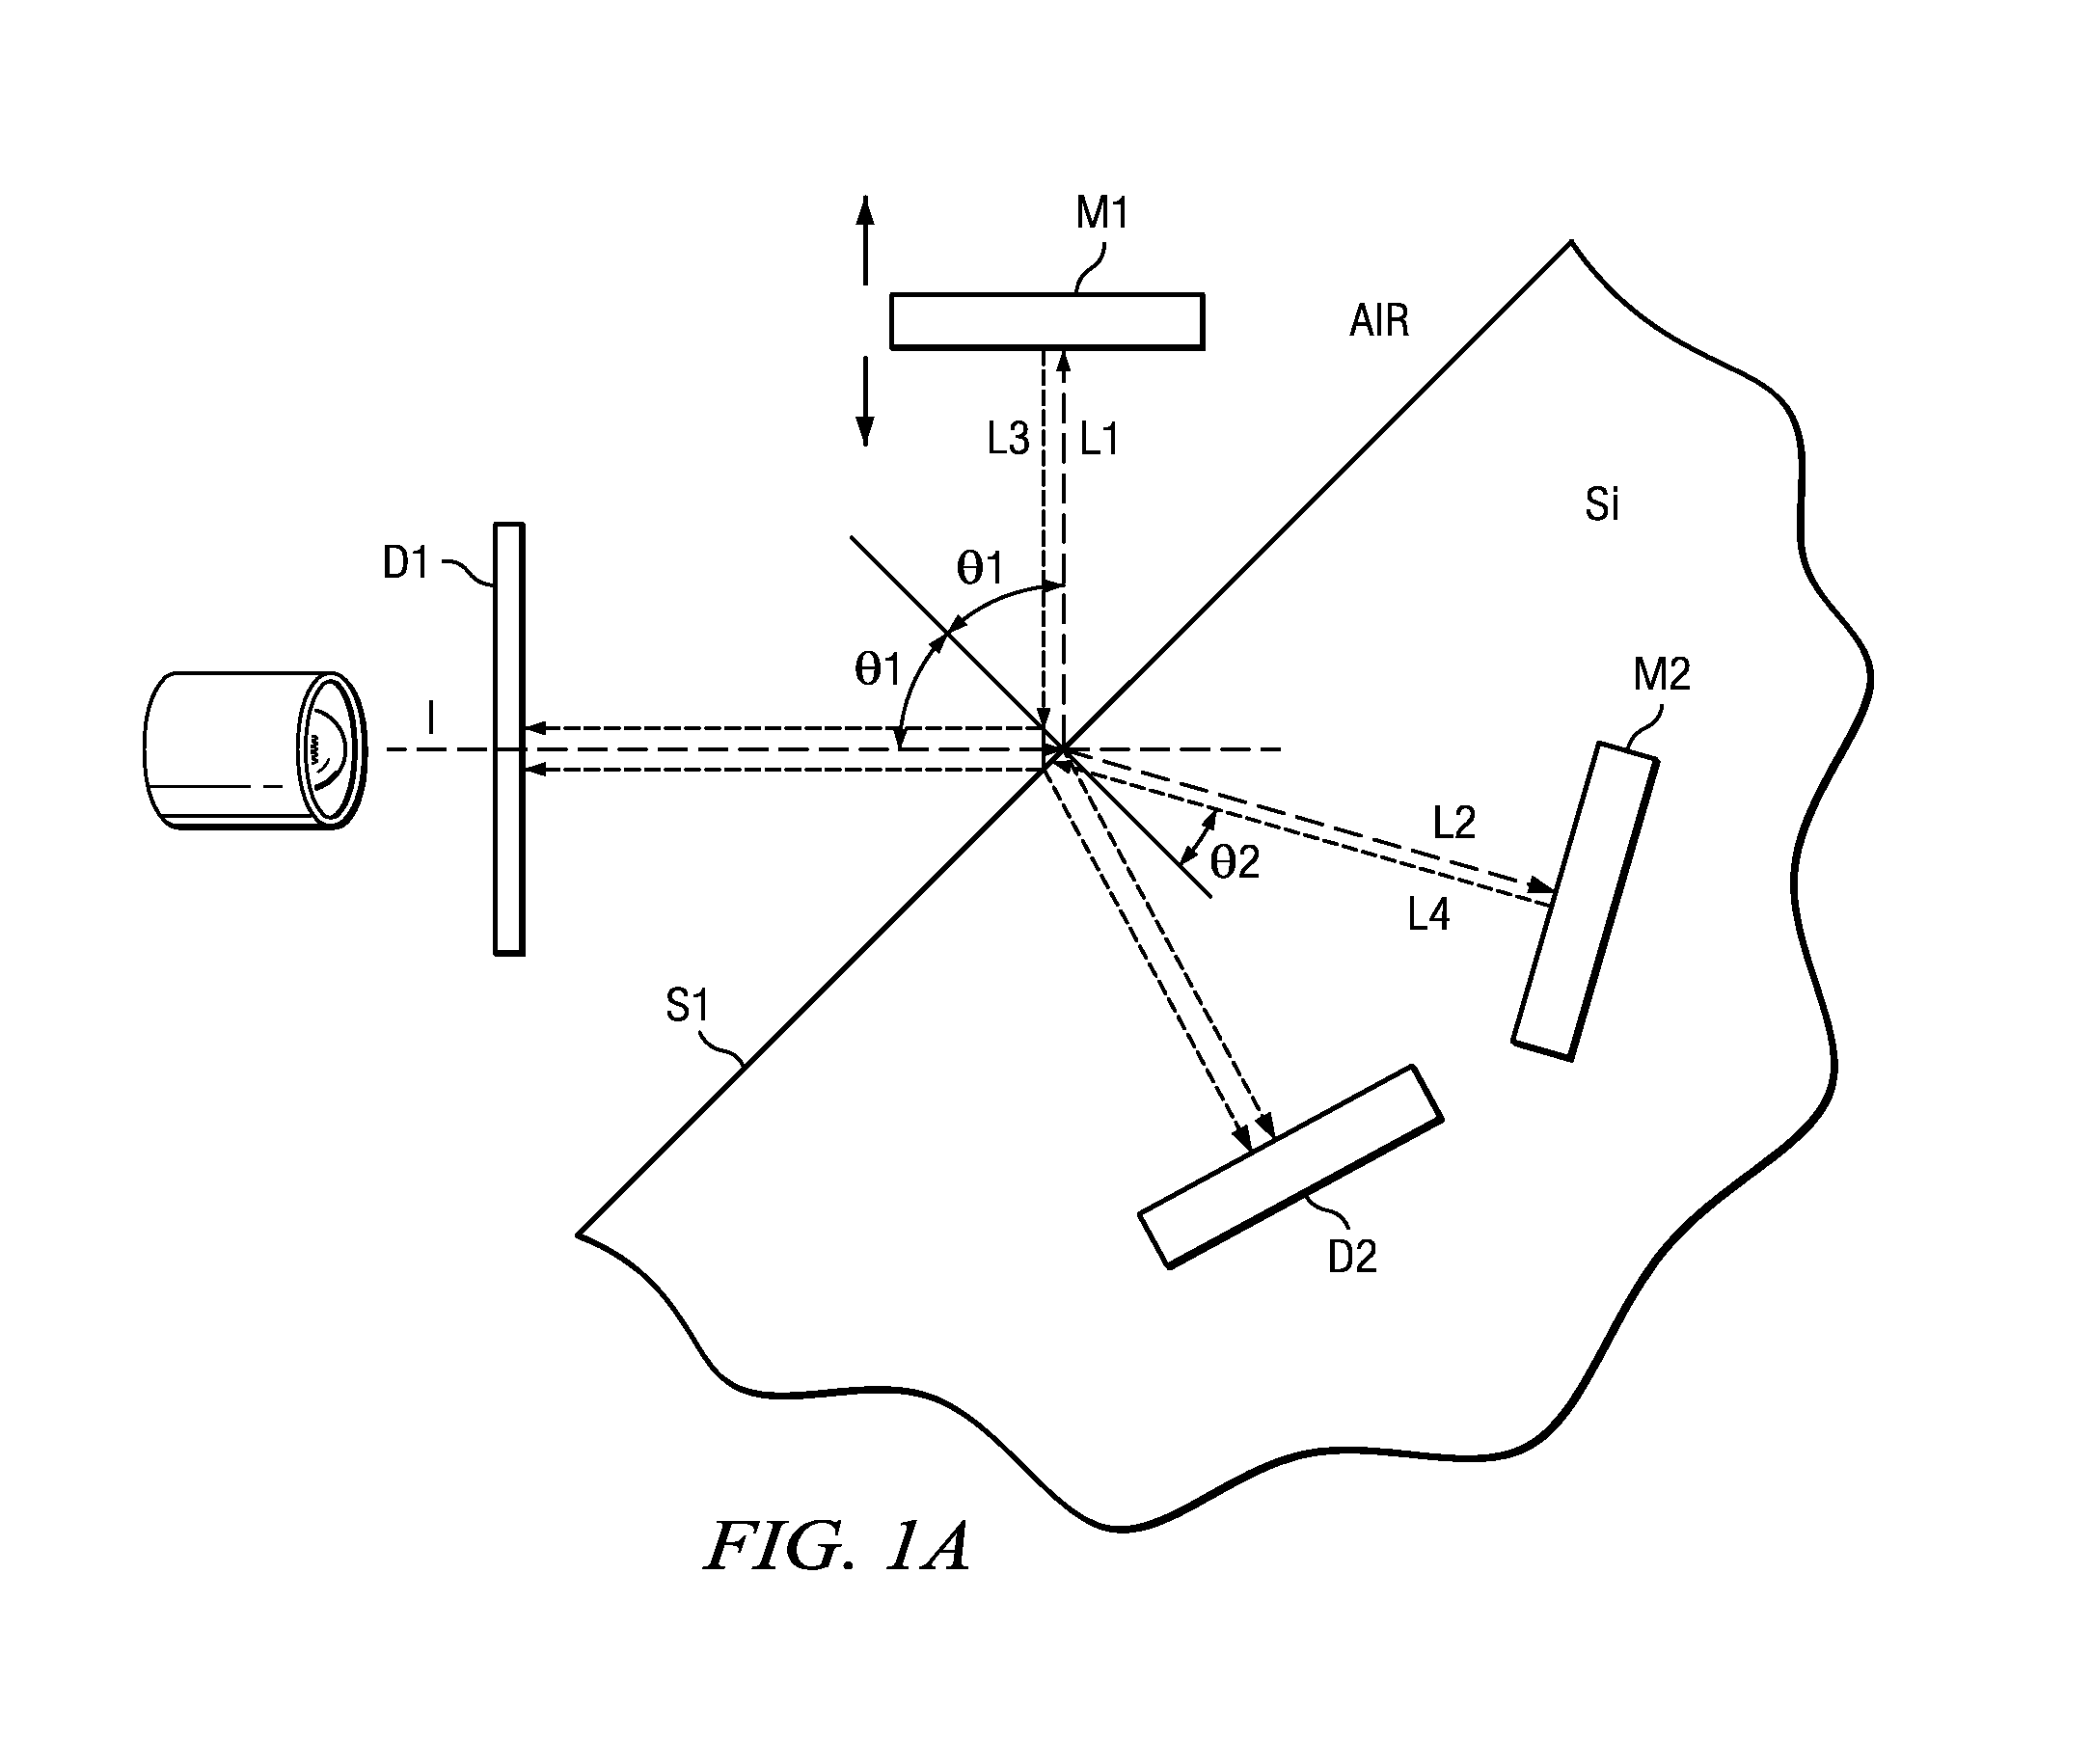 System, Method and Apparatus for a Micromachined Interferometer Using Optical Splitting